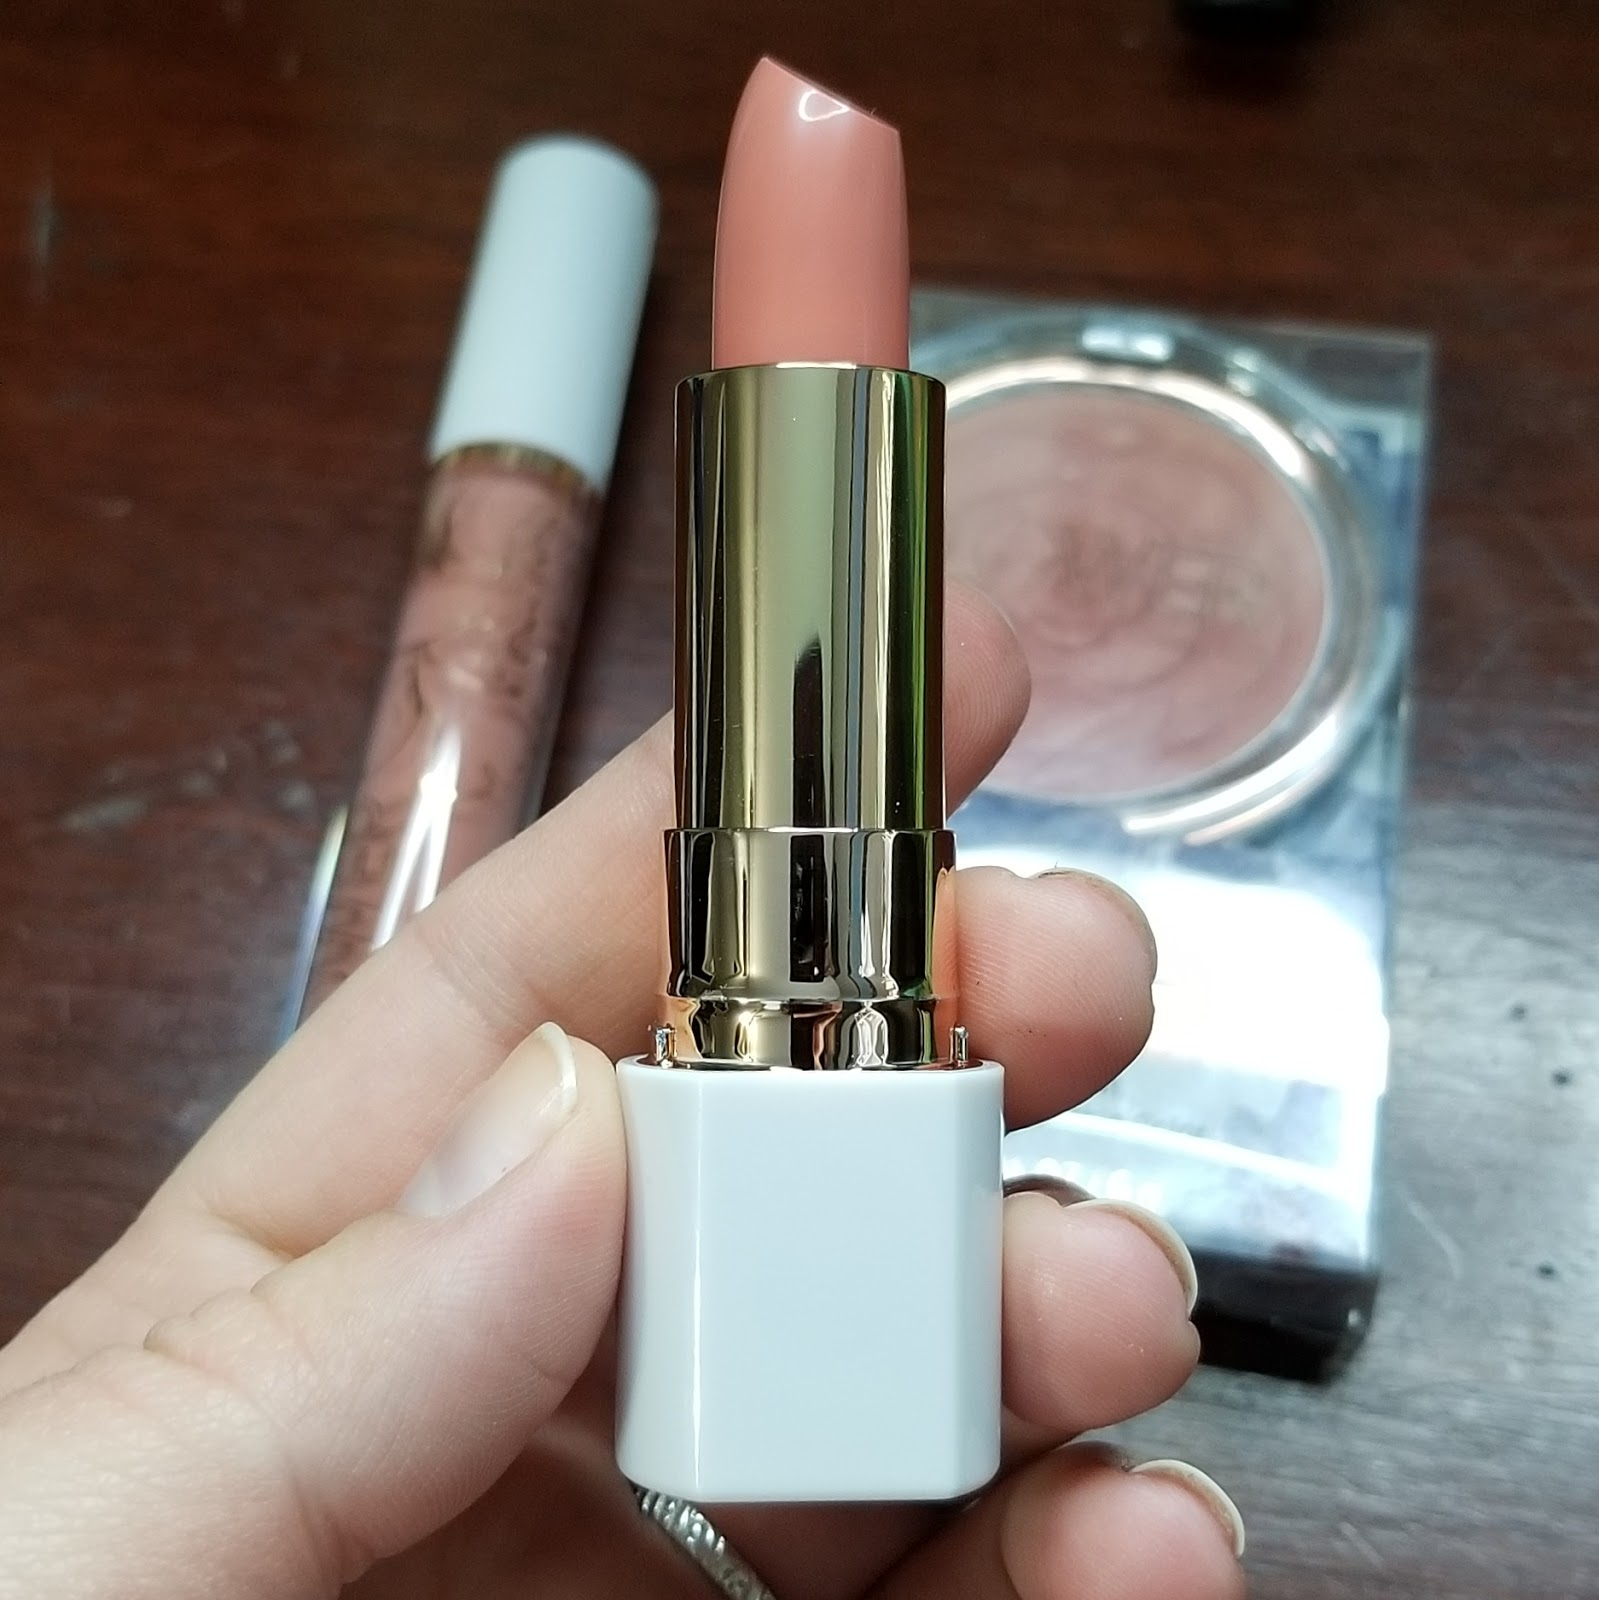 Lainamarie91 flower beauty reviews lipstick blush foundation brows flower pots powder blush ive been eyeing these blushes for awhile i mean just look at it its adorable i picked up warm hibiscus a rosey blush with a izmirmasajfo